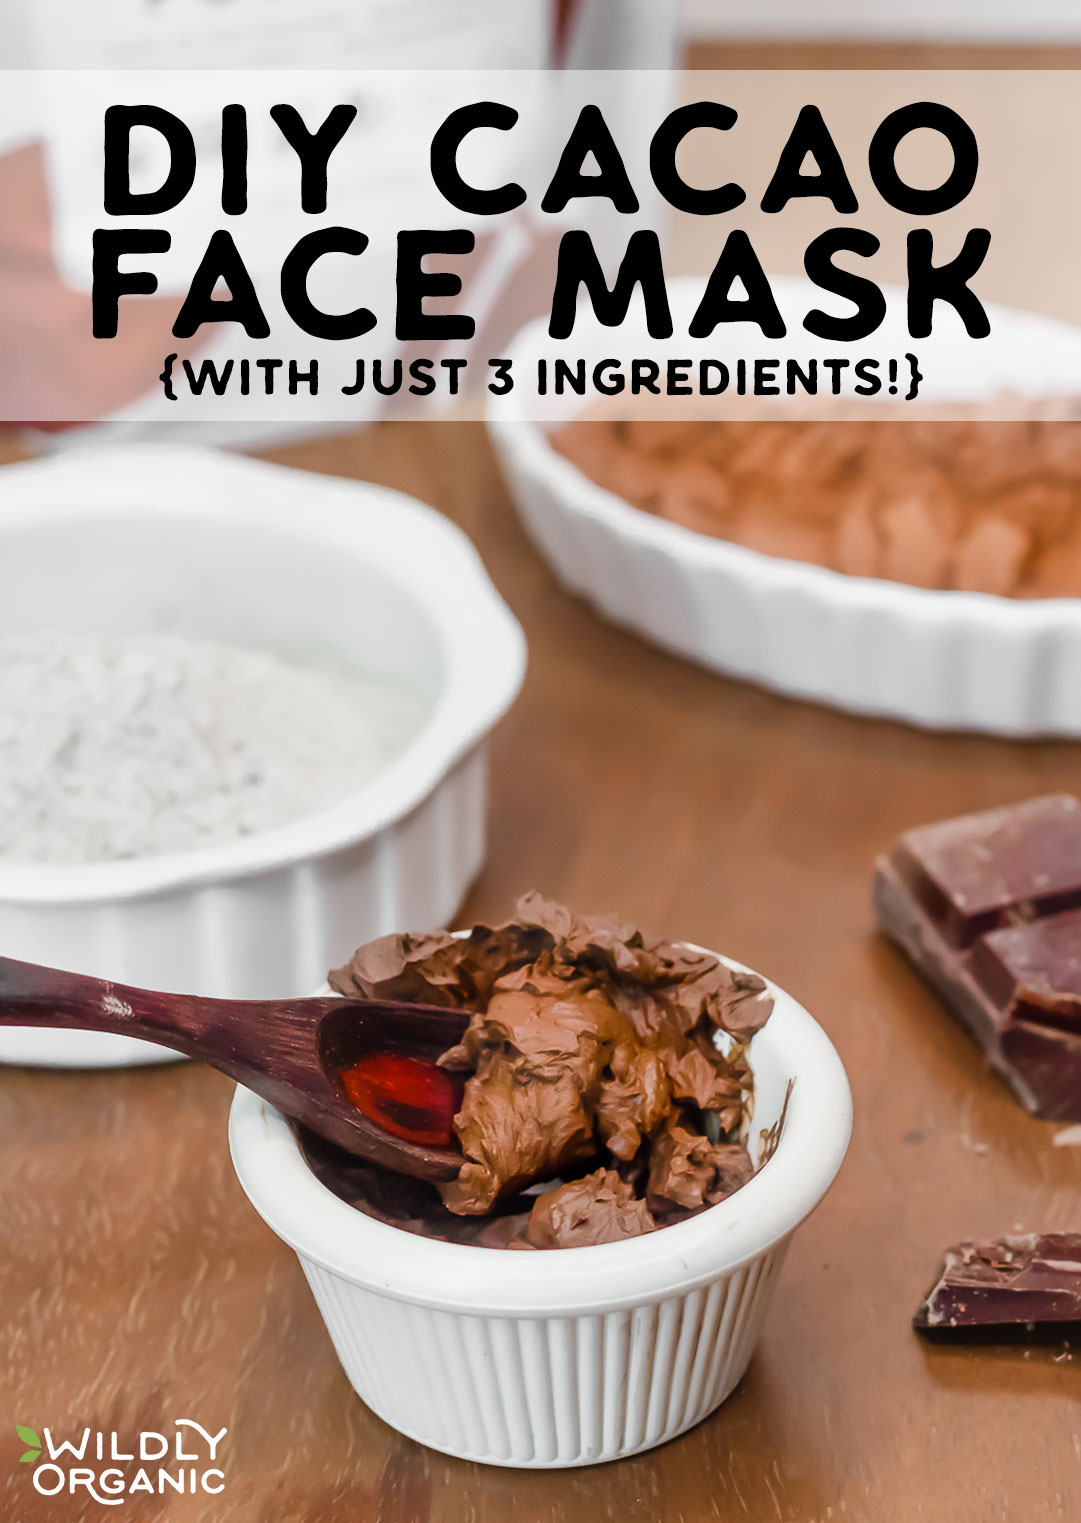 DIY Cacao Face Mask {with just 3 ingredients!}